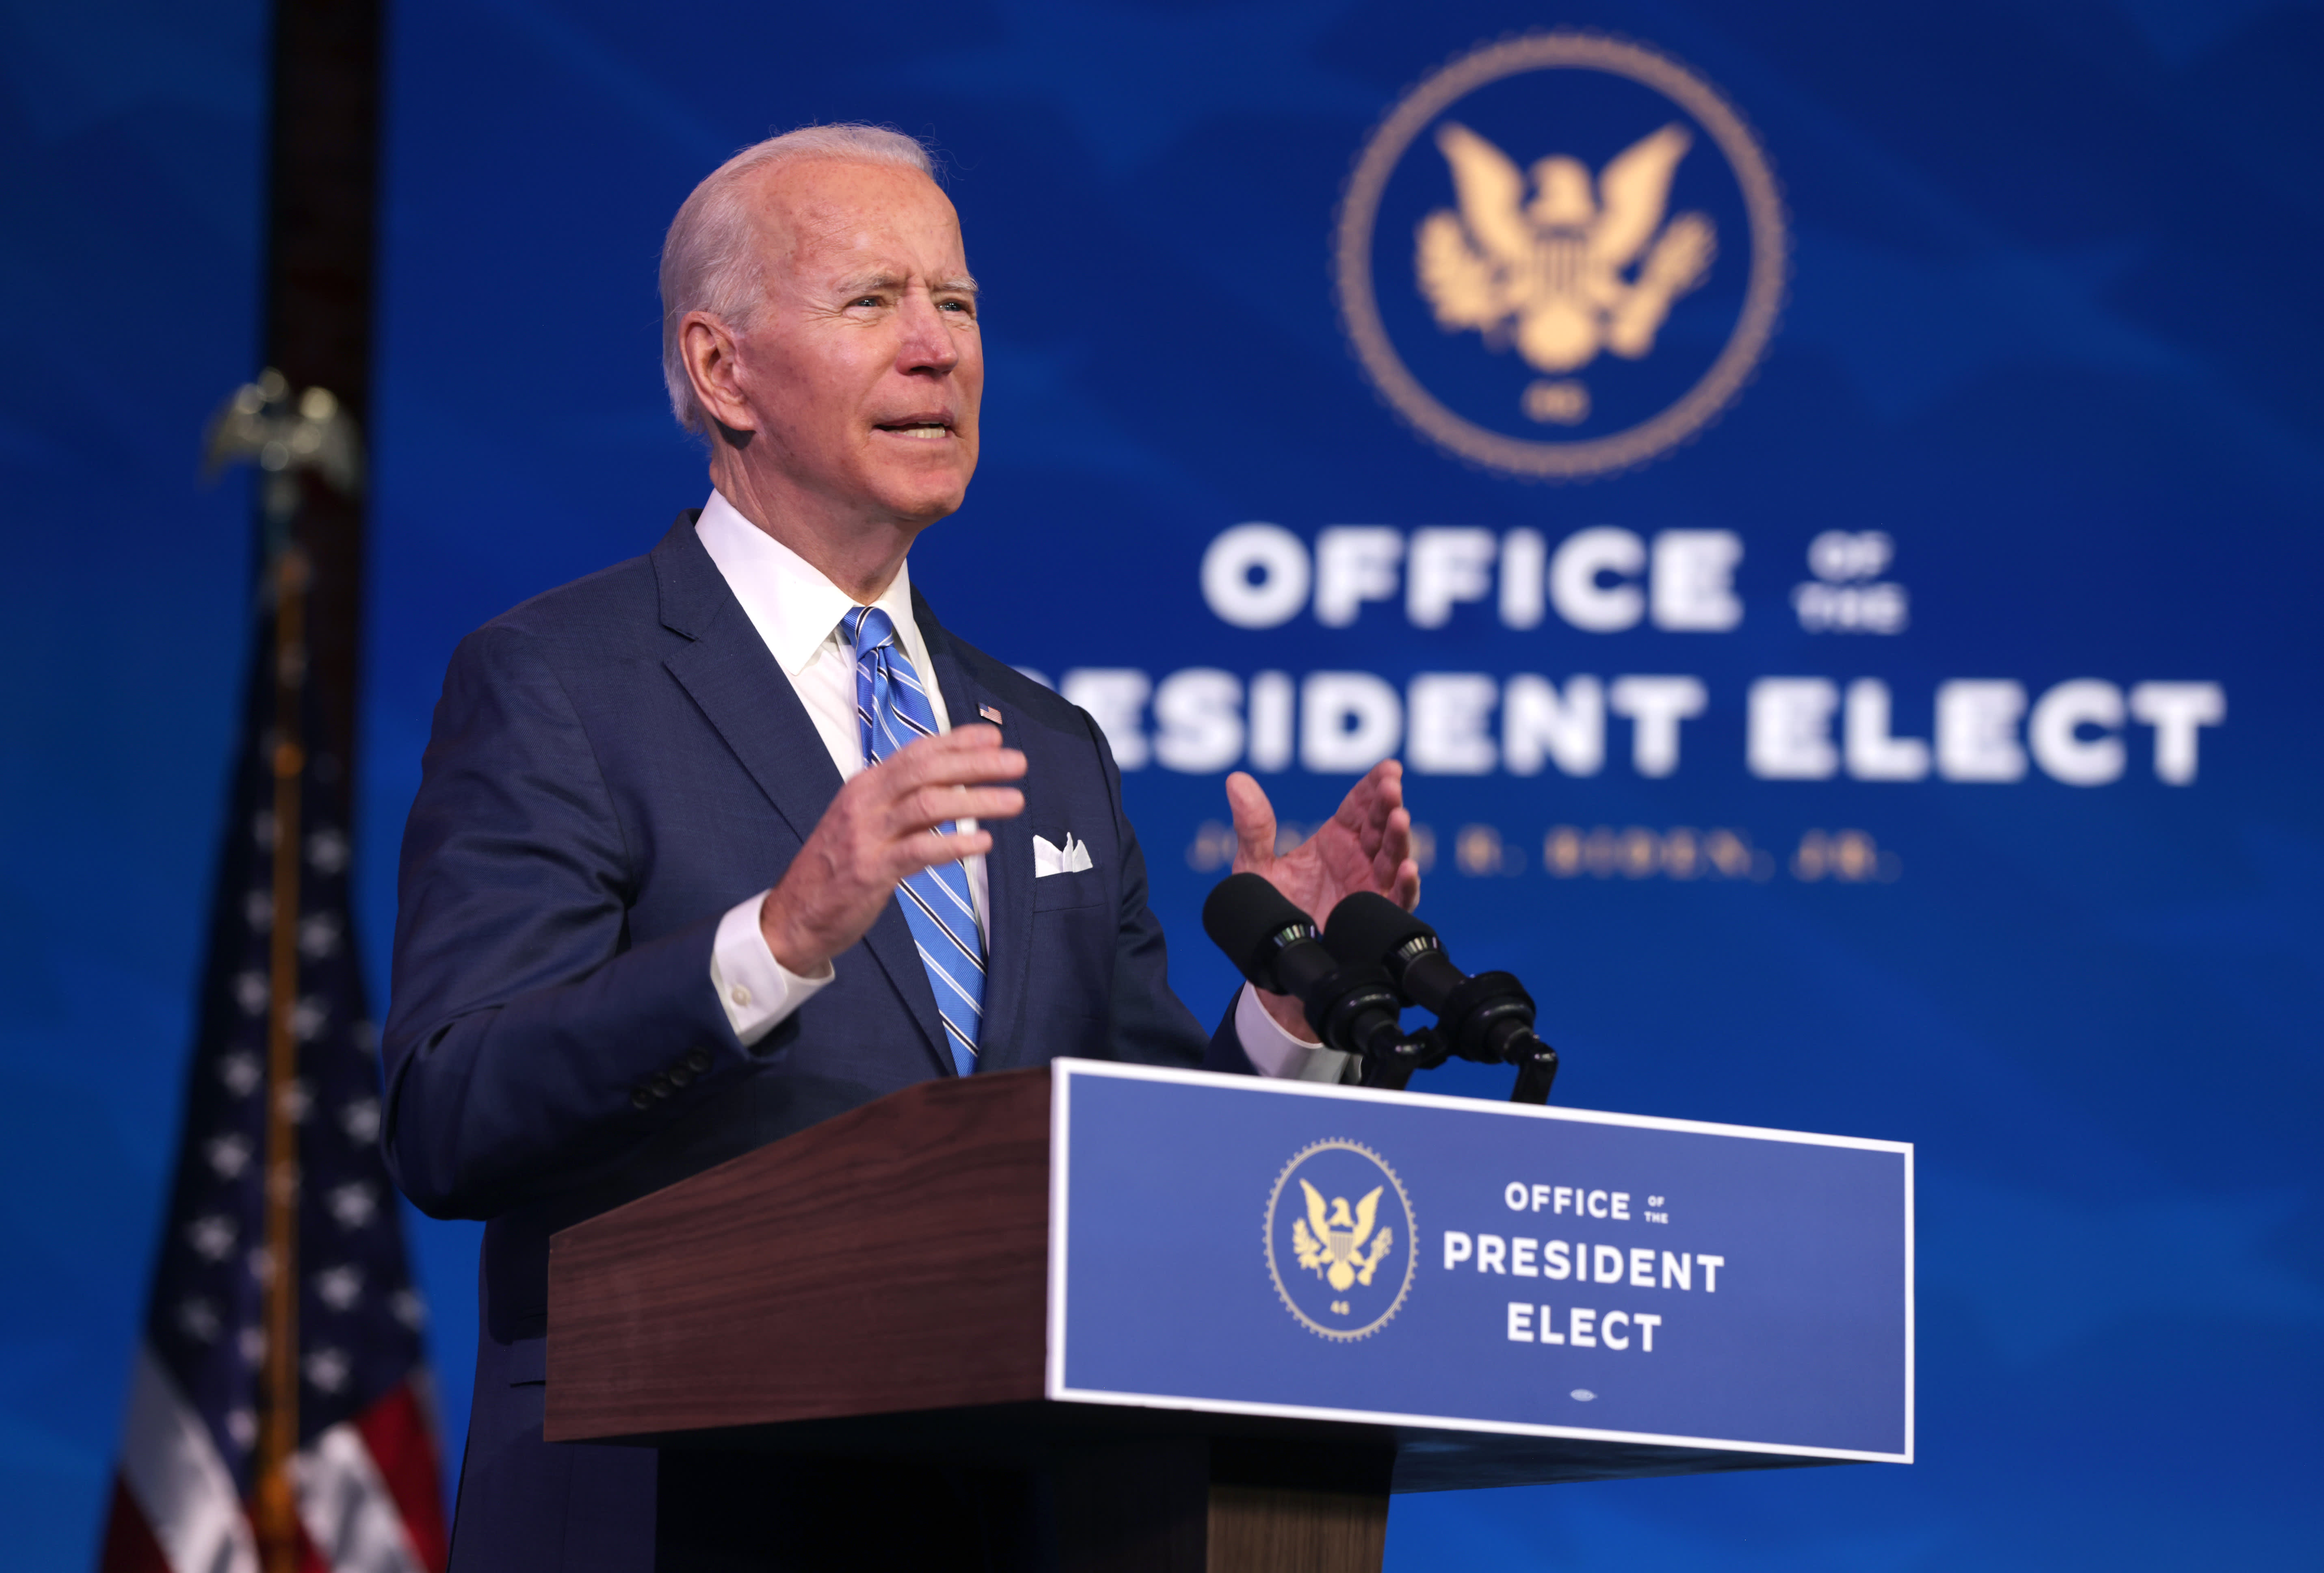 Biden's stimulus plan could drive out funds from Asia to the U.S. JPMorgan says – CNBC